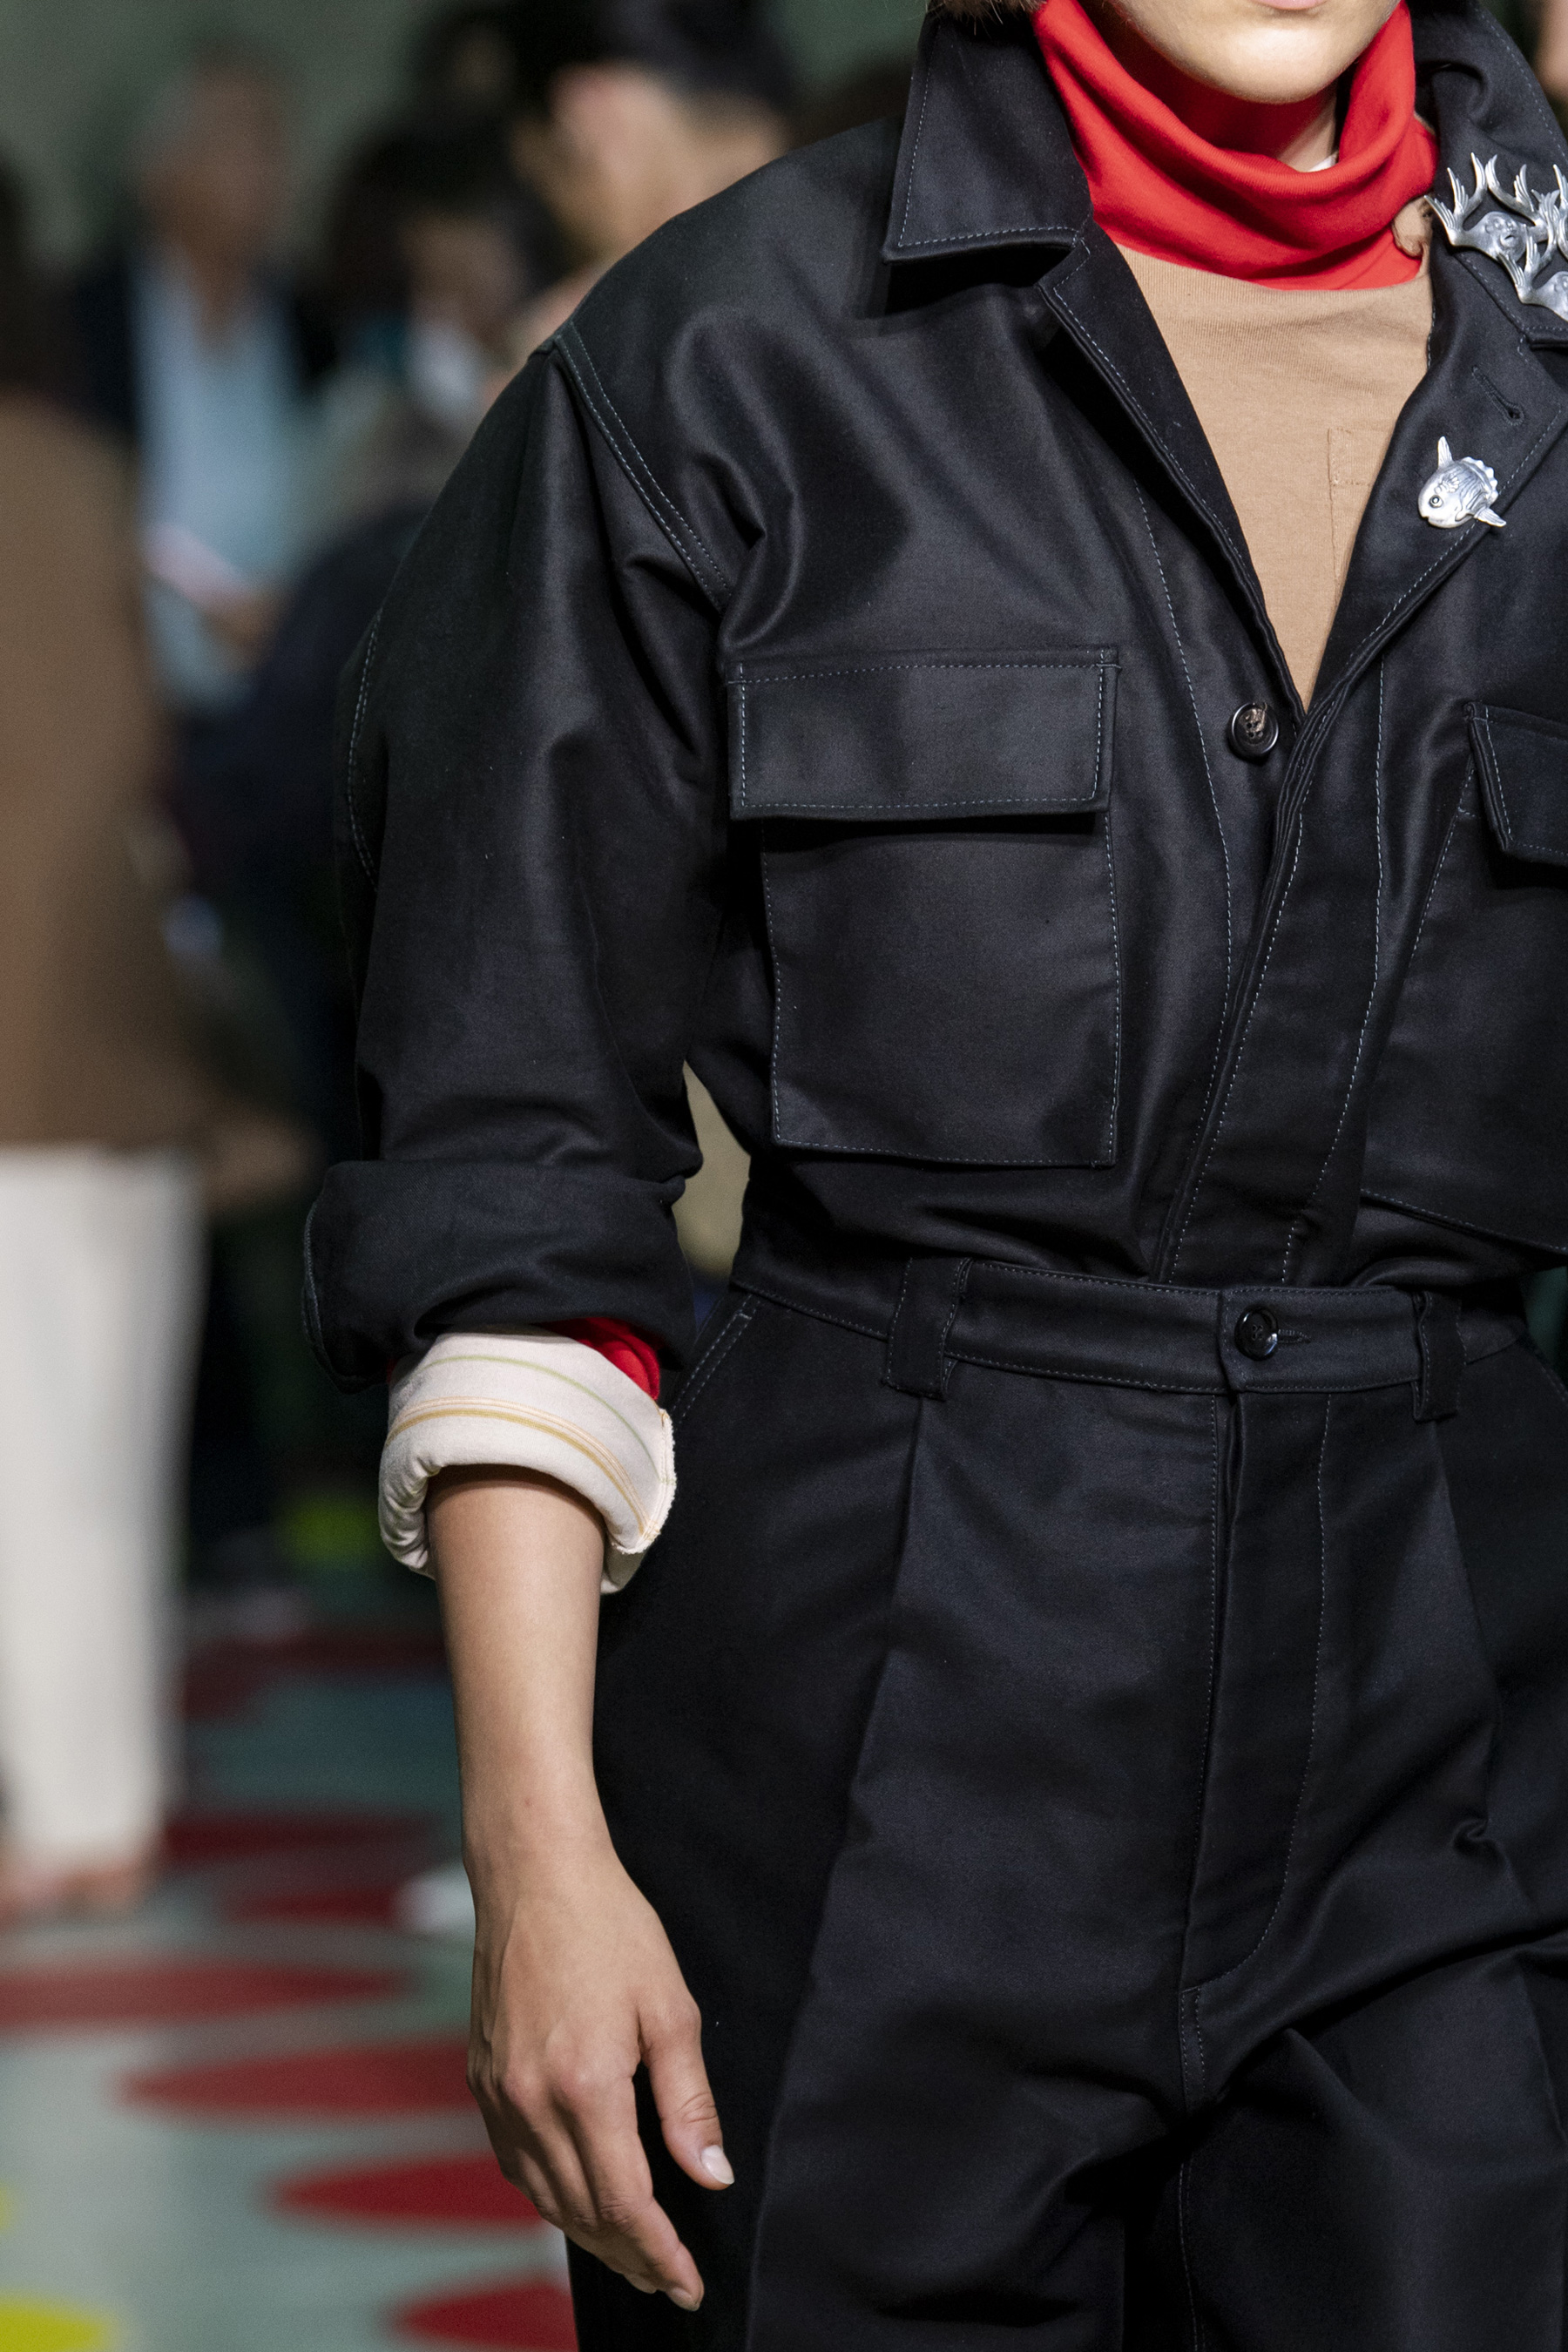 Marni Spring 2020 Men's Fashion Show Details